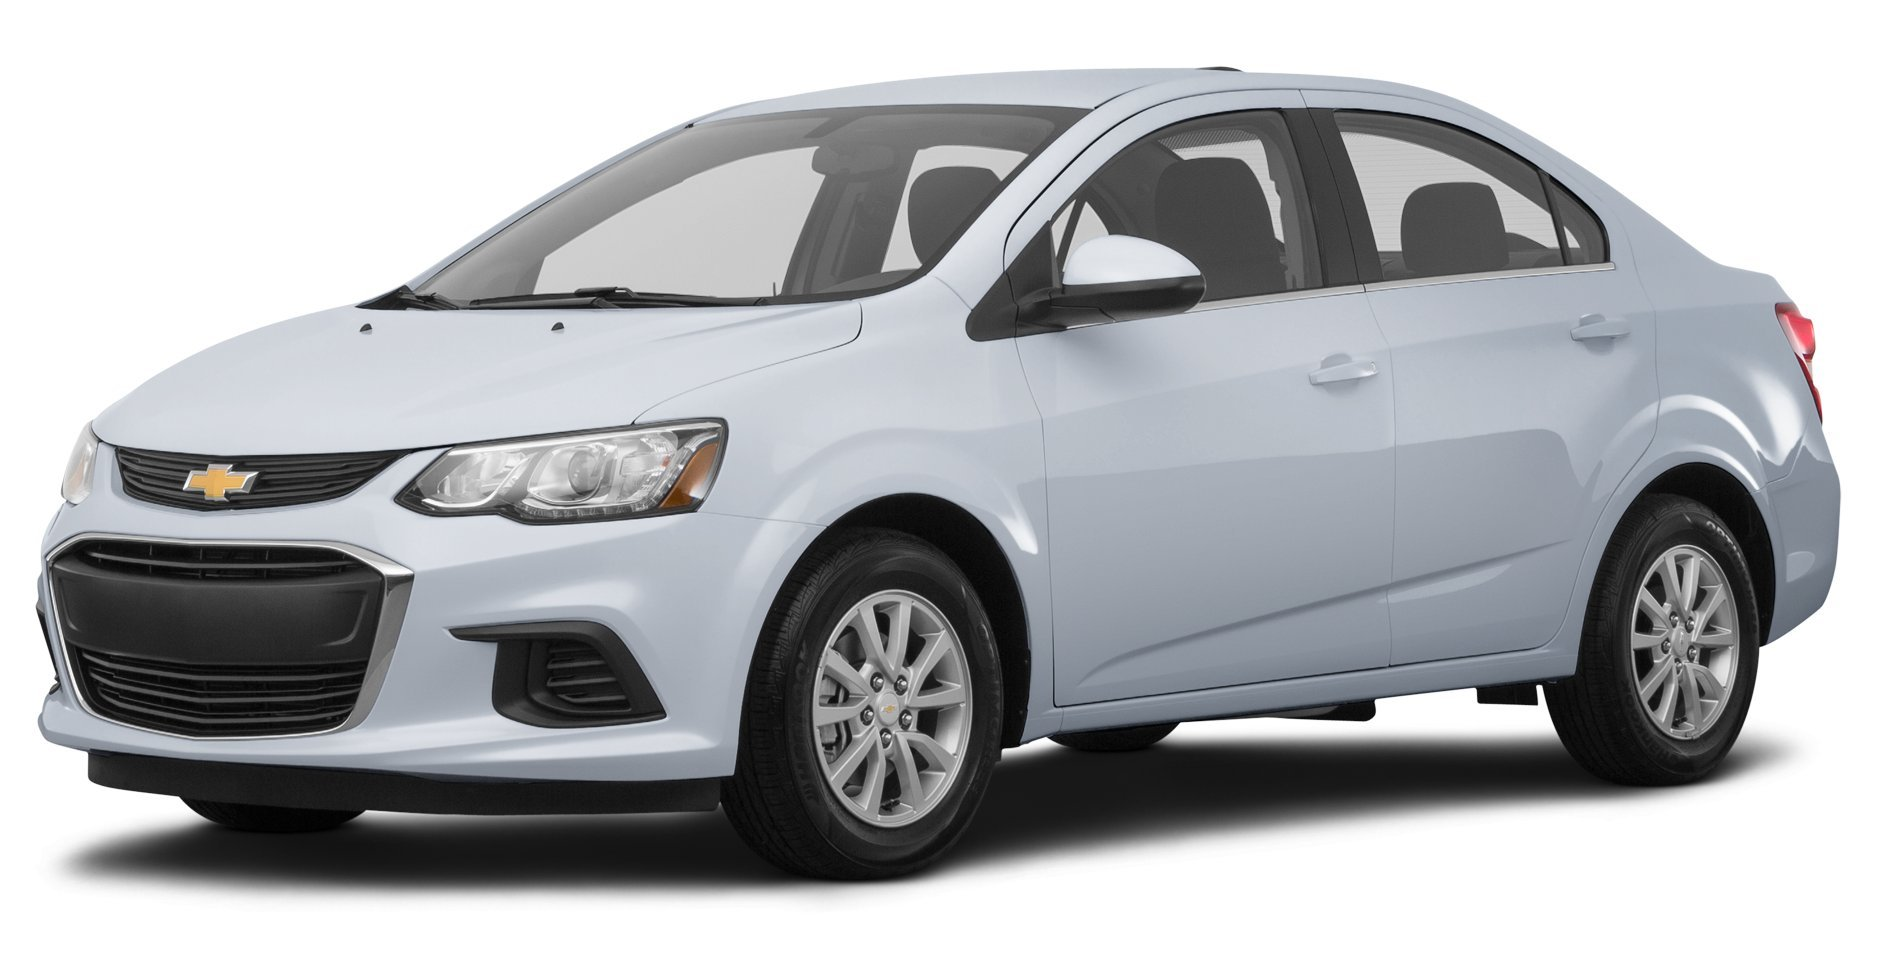 2017 chevrolet sonic reviews images and specs vehicles. Black Bedroom Furniture Sets. Home Design Ideas